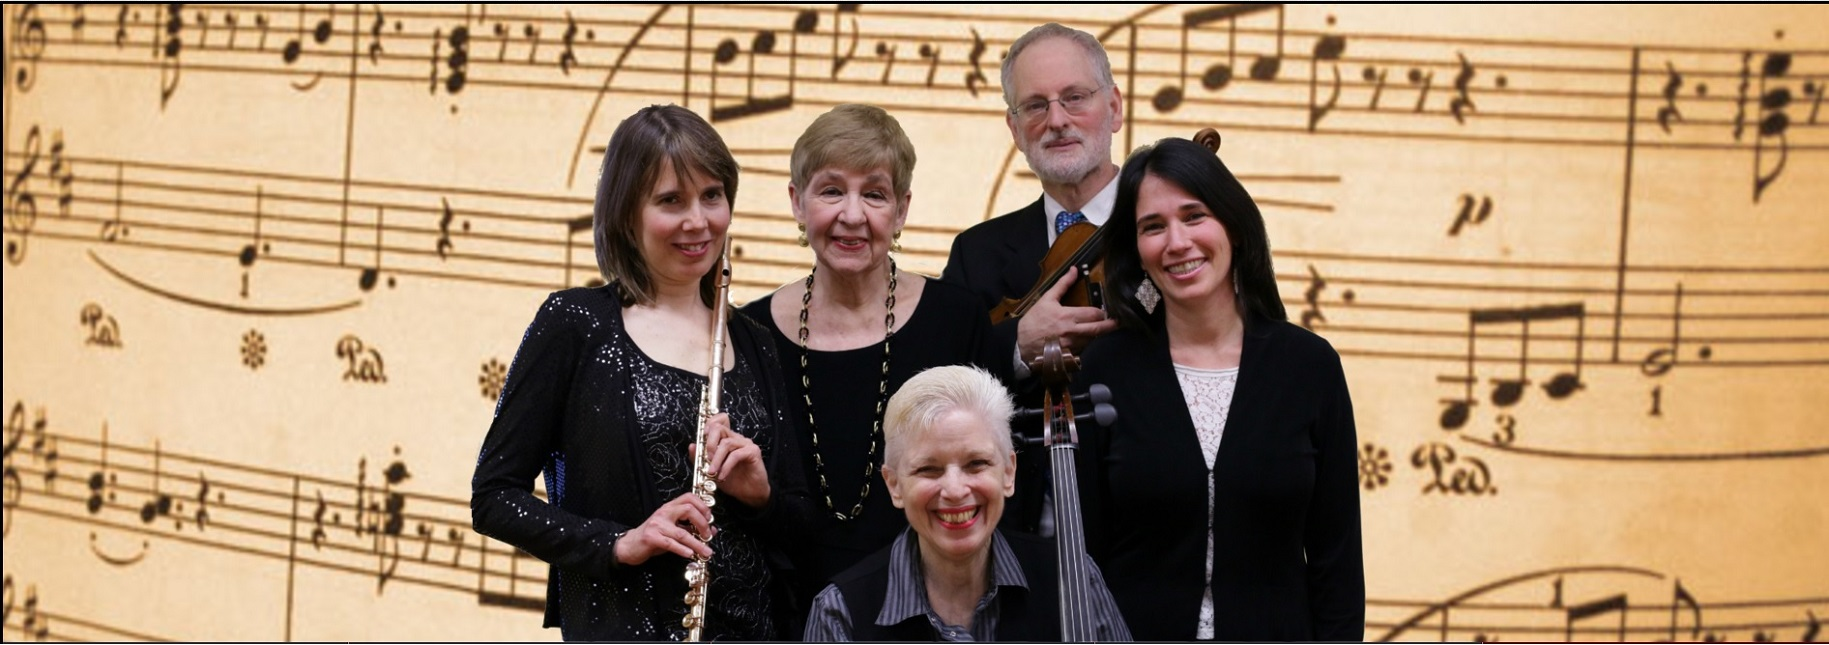 All Seasons Chamber Players: The Artists